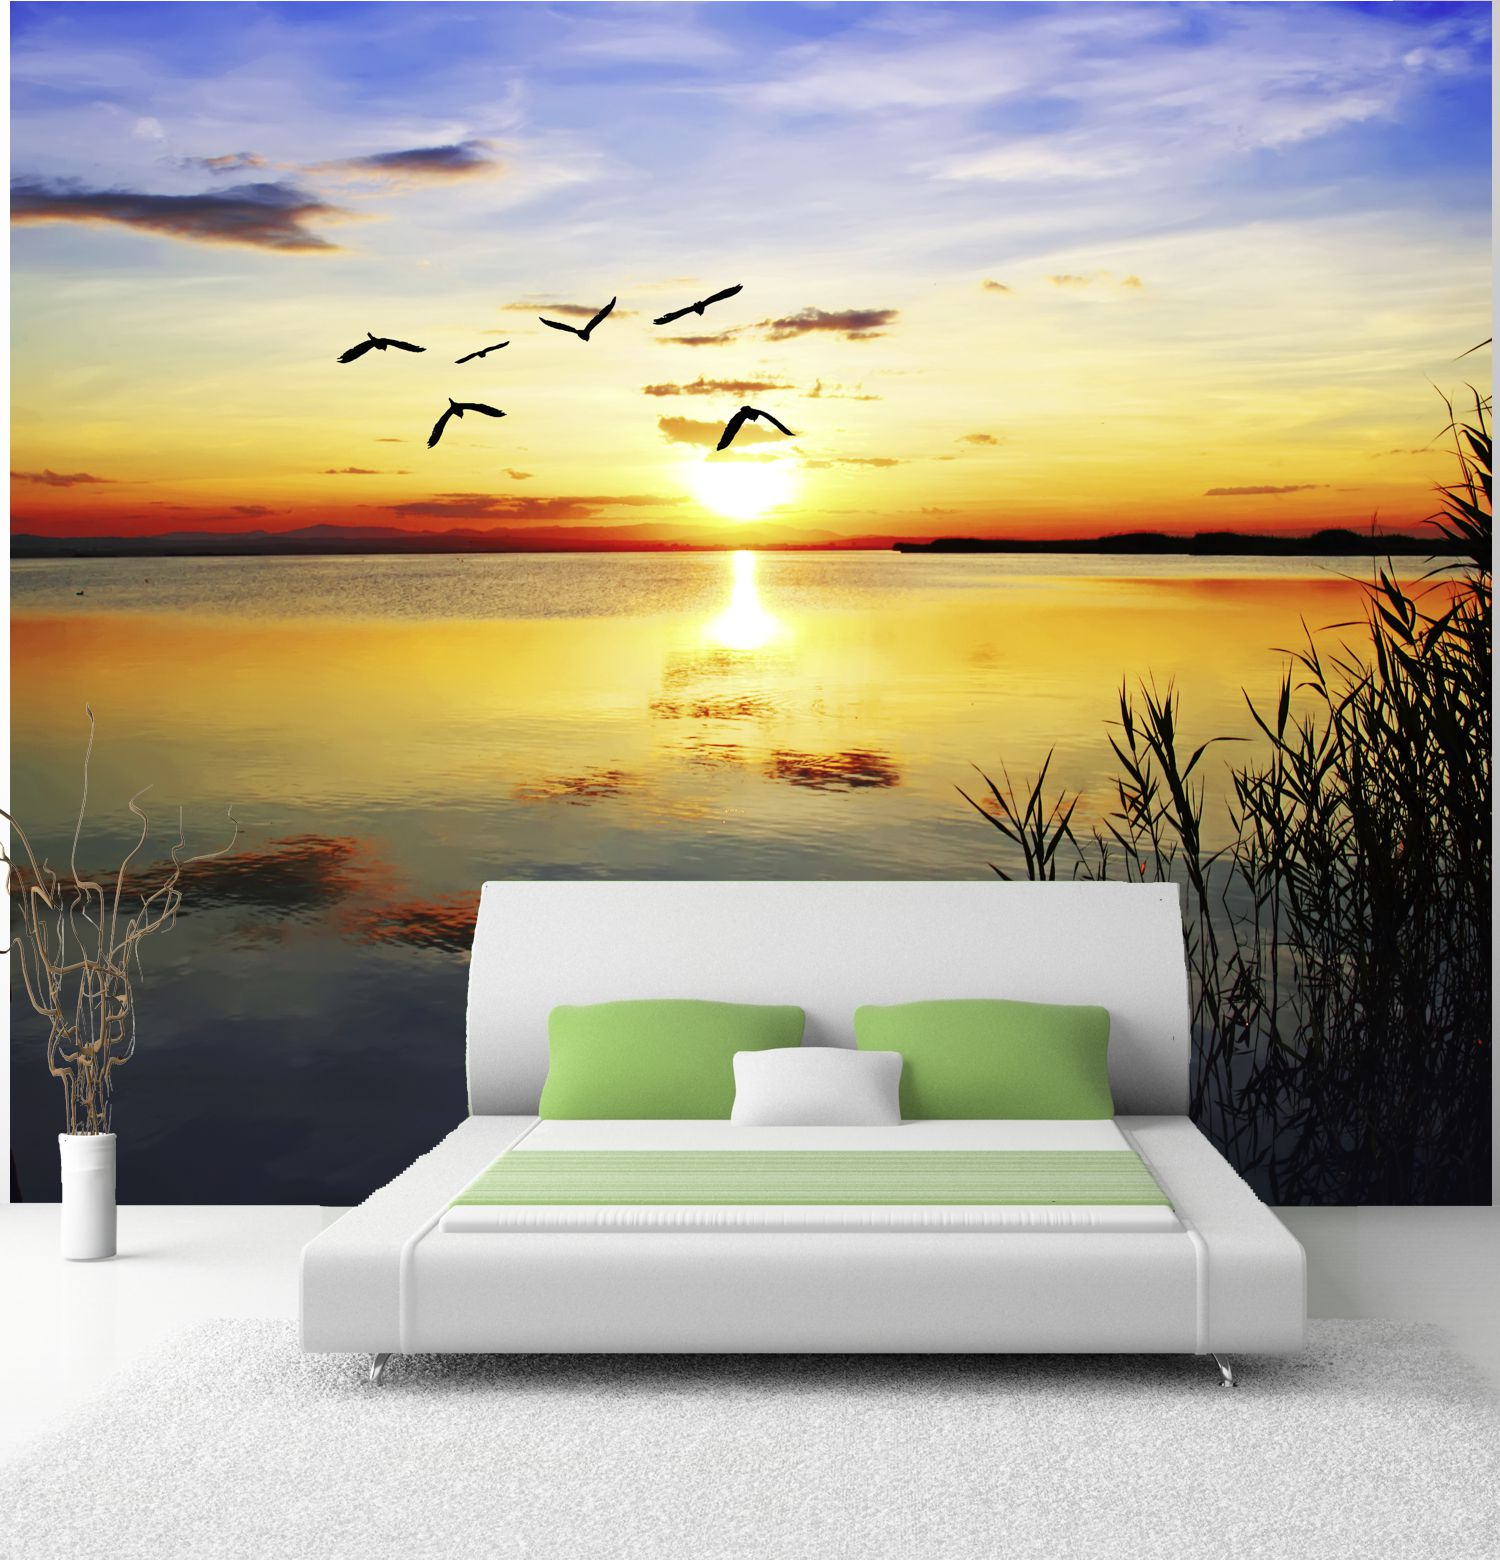 poster fototapete selbstklebend natur sonnenuntergang ebay. Black Bedroom Furniture Sets. Home Design Ideas